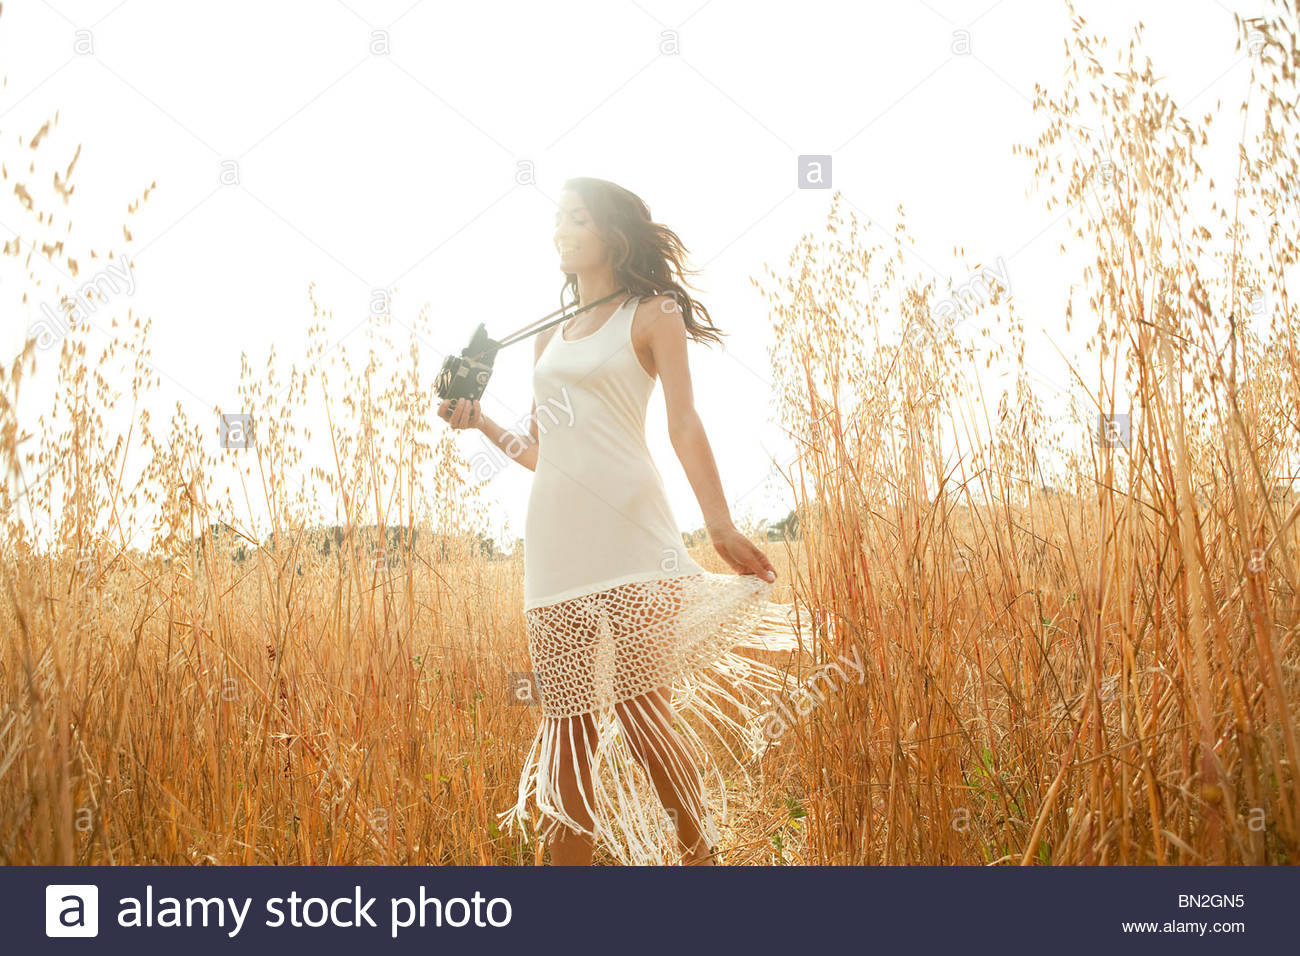 Woman standing in grass with camera Stock Photo